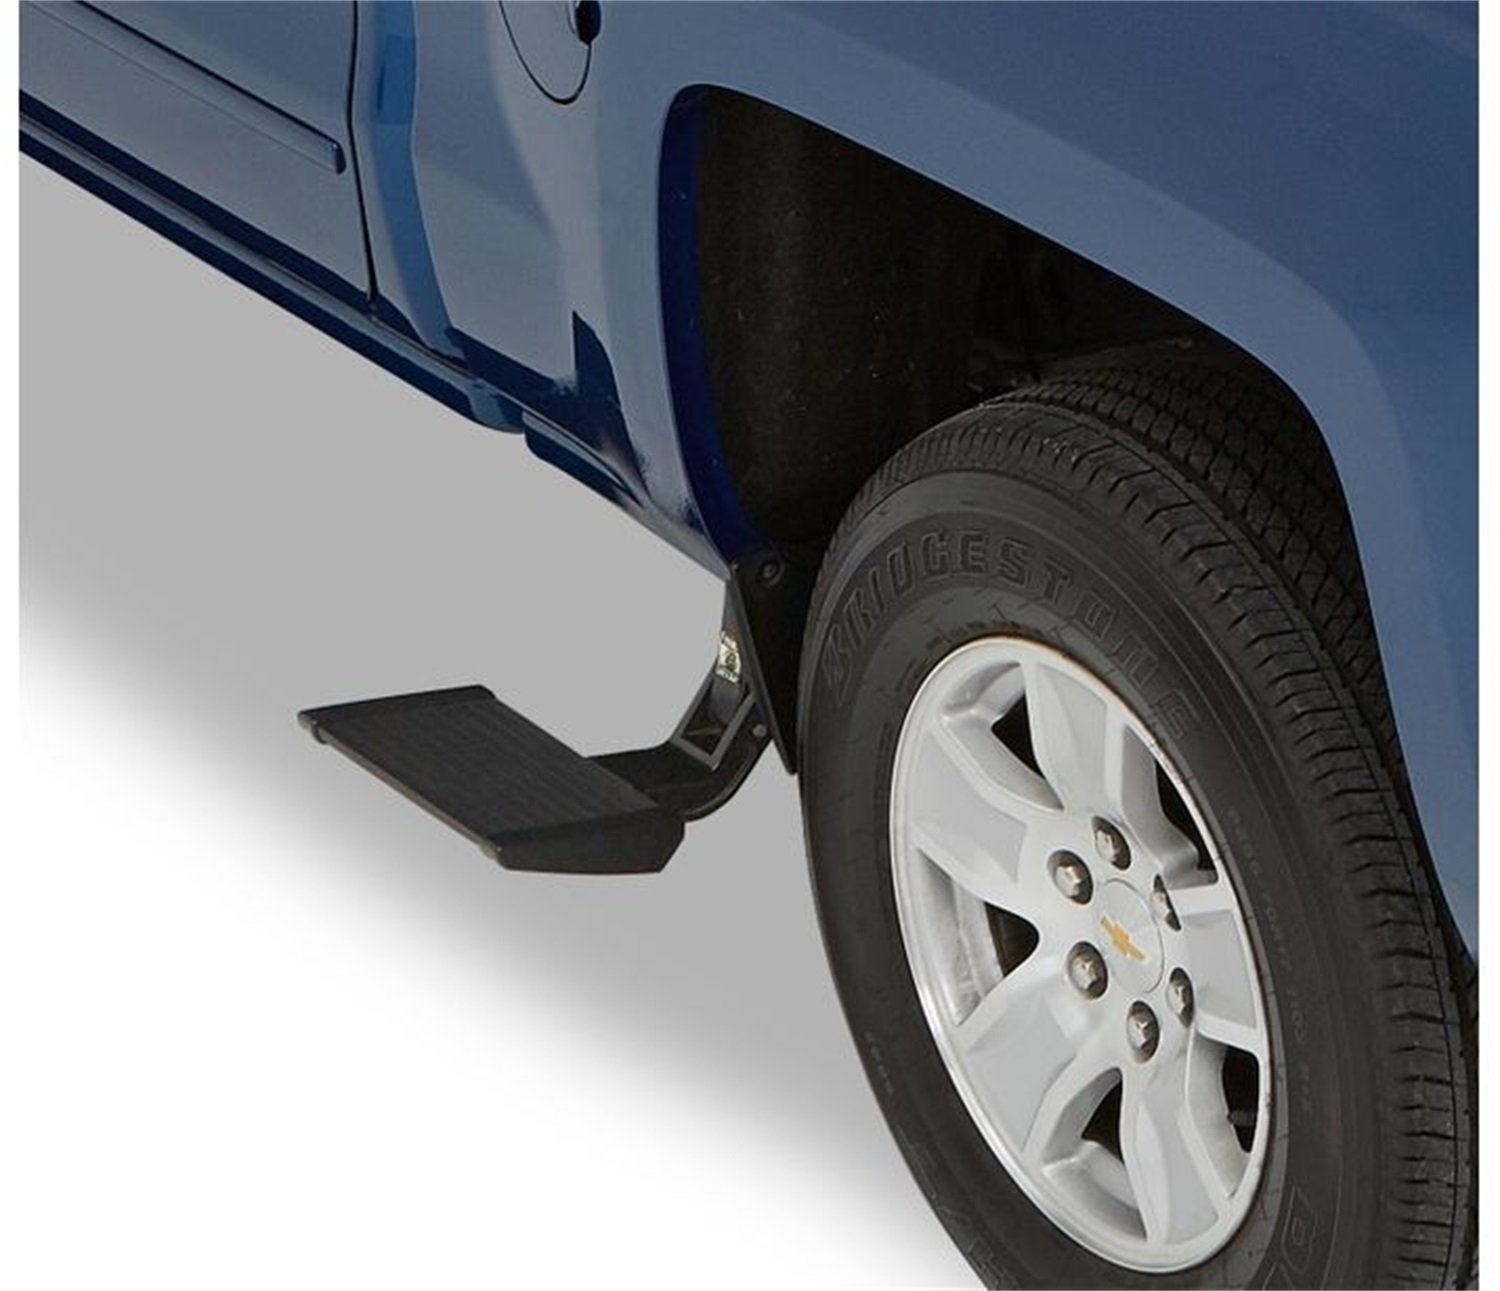 Bestop 75413-15 Side-Mounted Trekstep for 2014-2018 Ram 2500; fits driver side only, 6.3' and 8.0' beds by Bestop (Image #1)